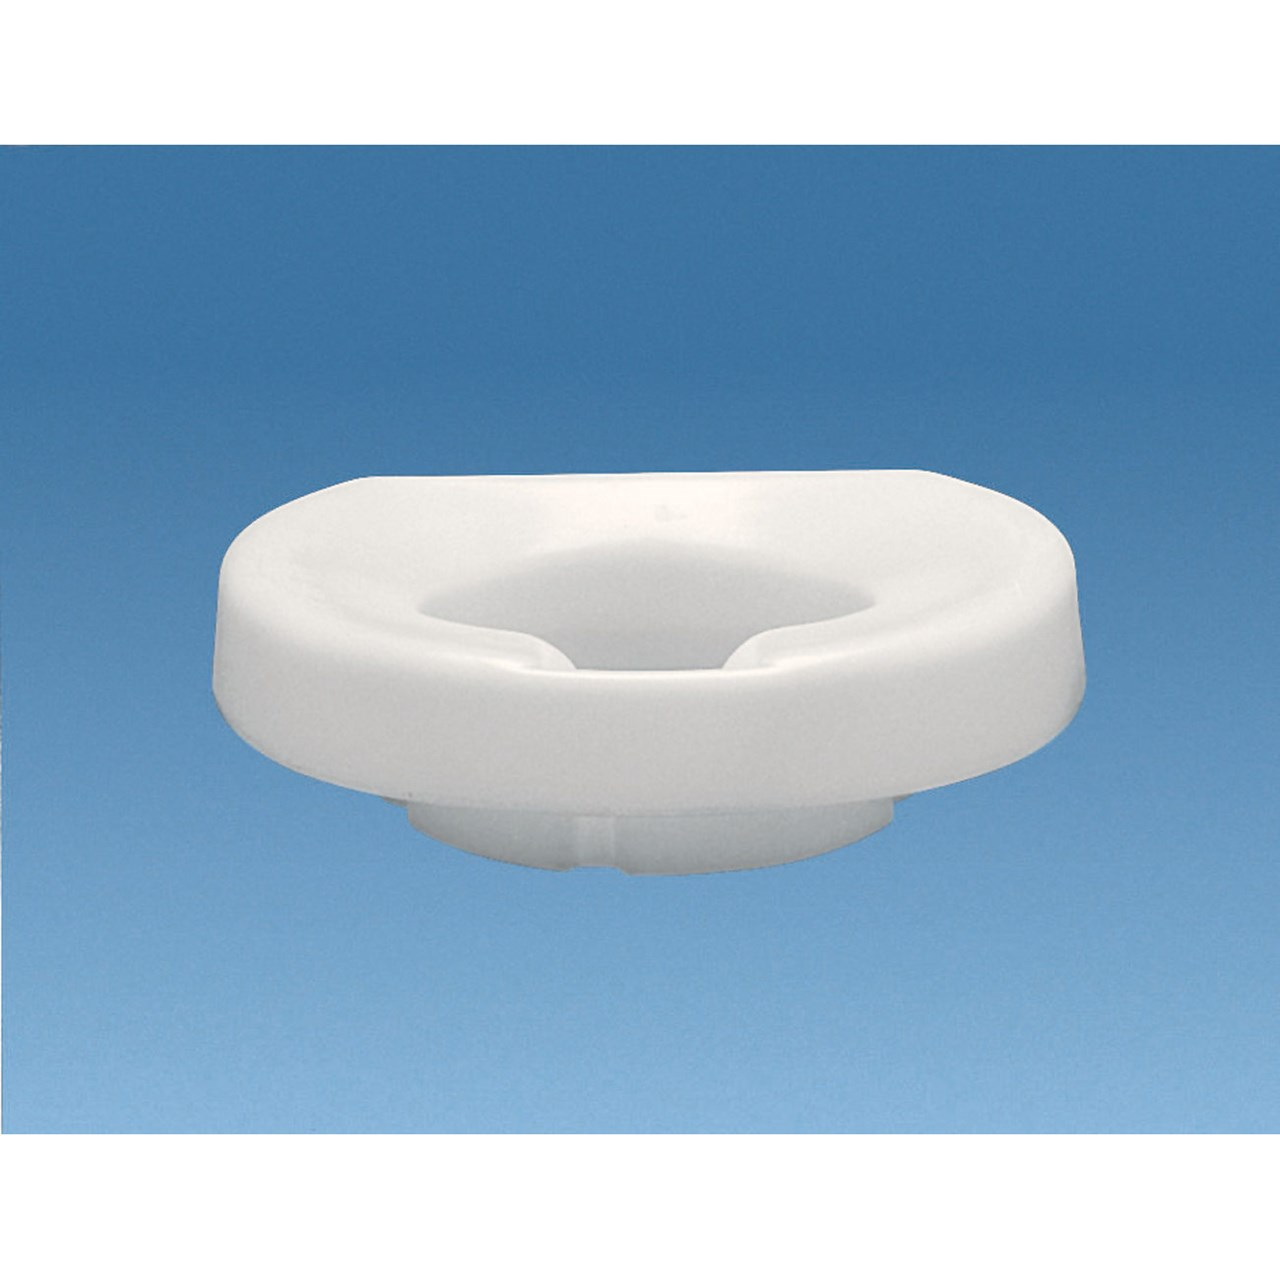 Maxiaids Tall Ette Contoured Raised Toilet Seat 2 In Elong